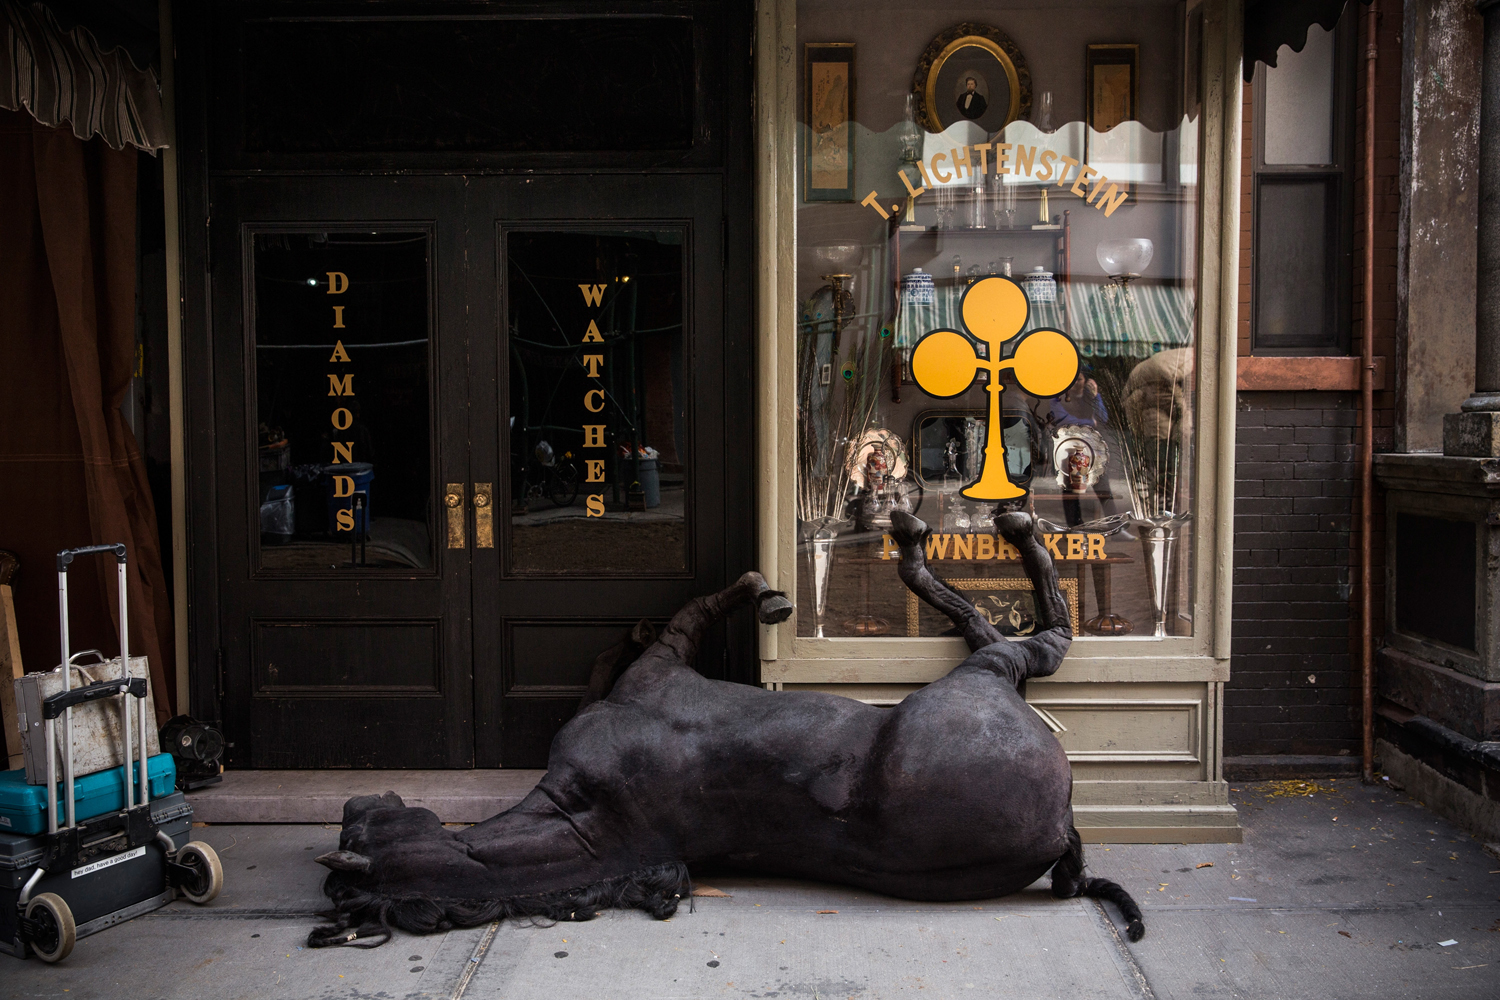 Nov. 6, 2013. A fake dead horse is seen on set for a television show being filmed in the Lower East Side neighborhood of the Manhattan borough of New York City.